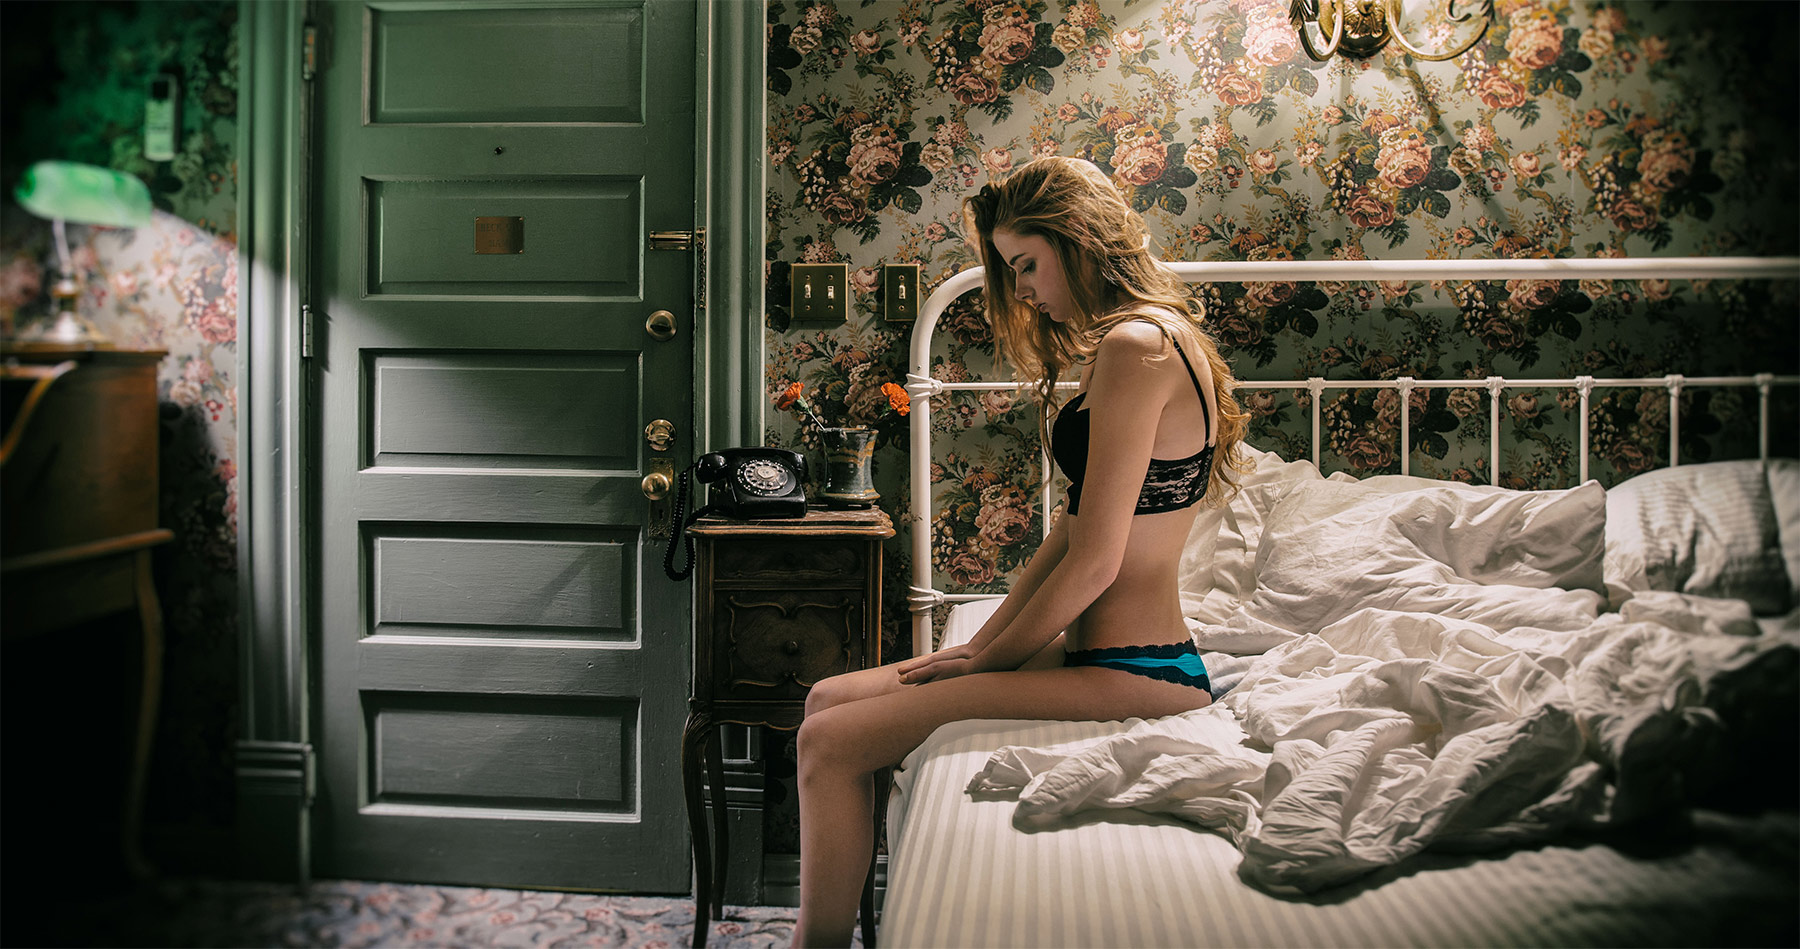 leah_conner_hotel_bed_lingerie